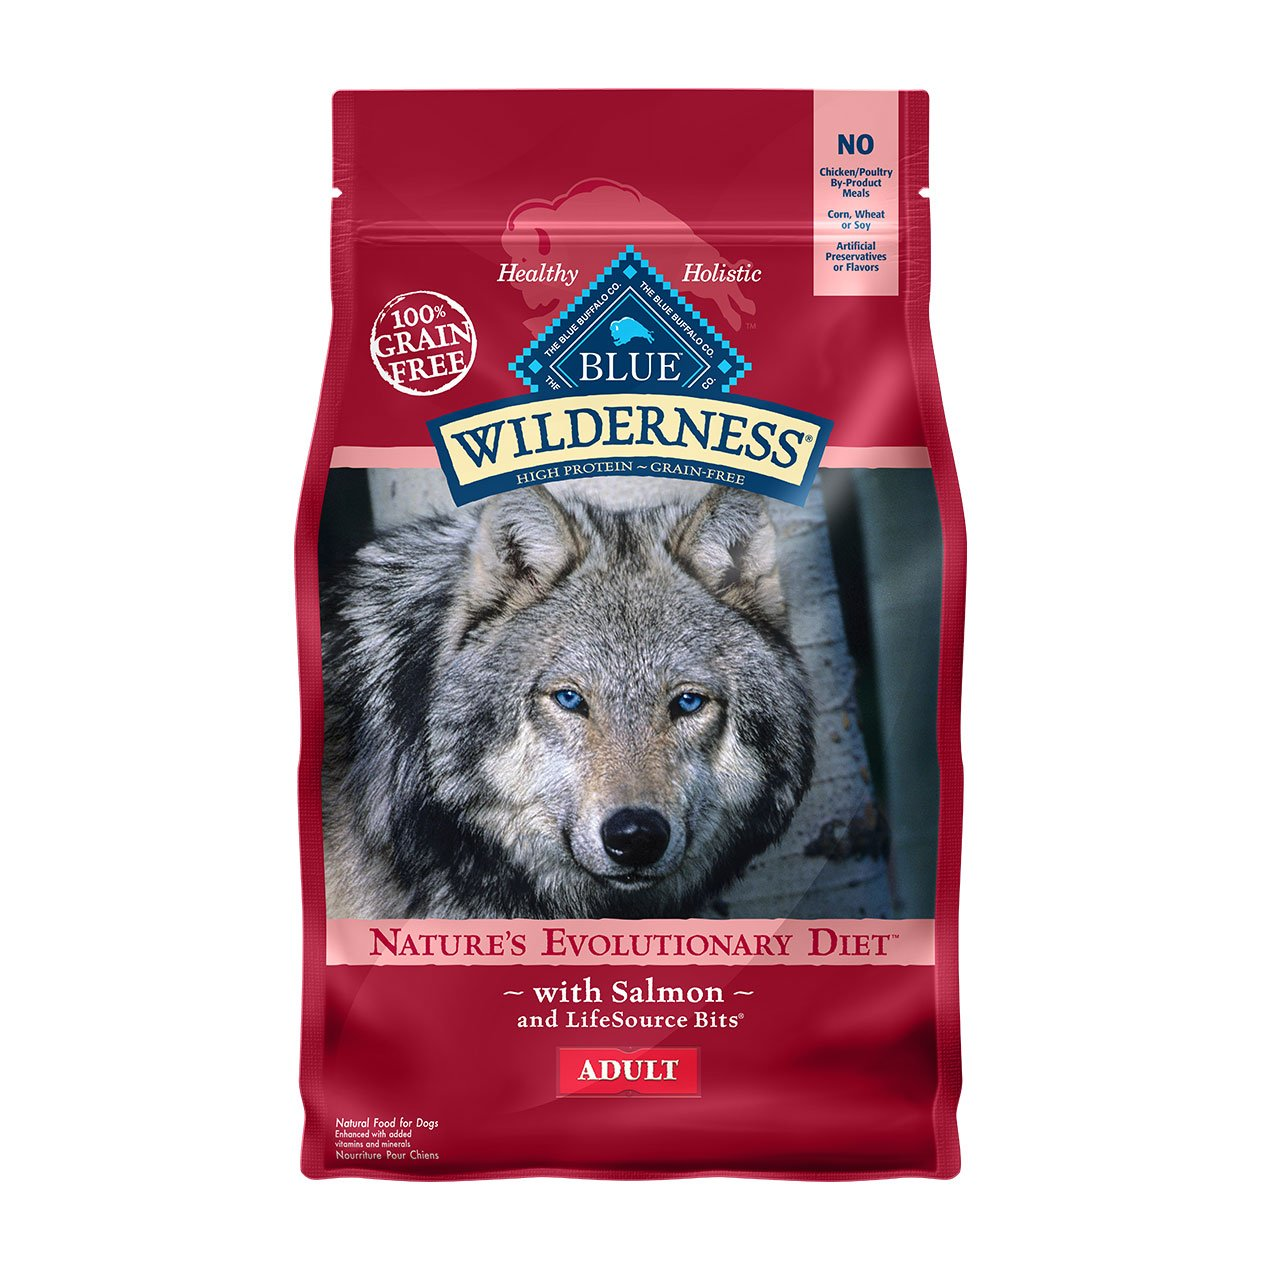 Who Makes California Natural Dog Food